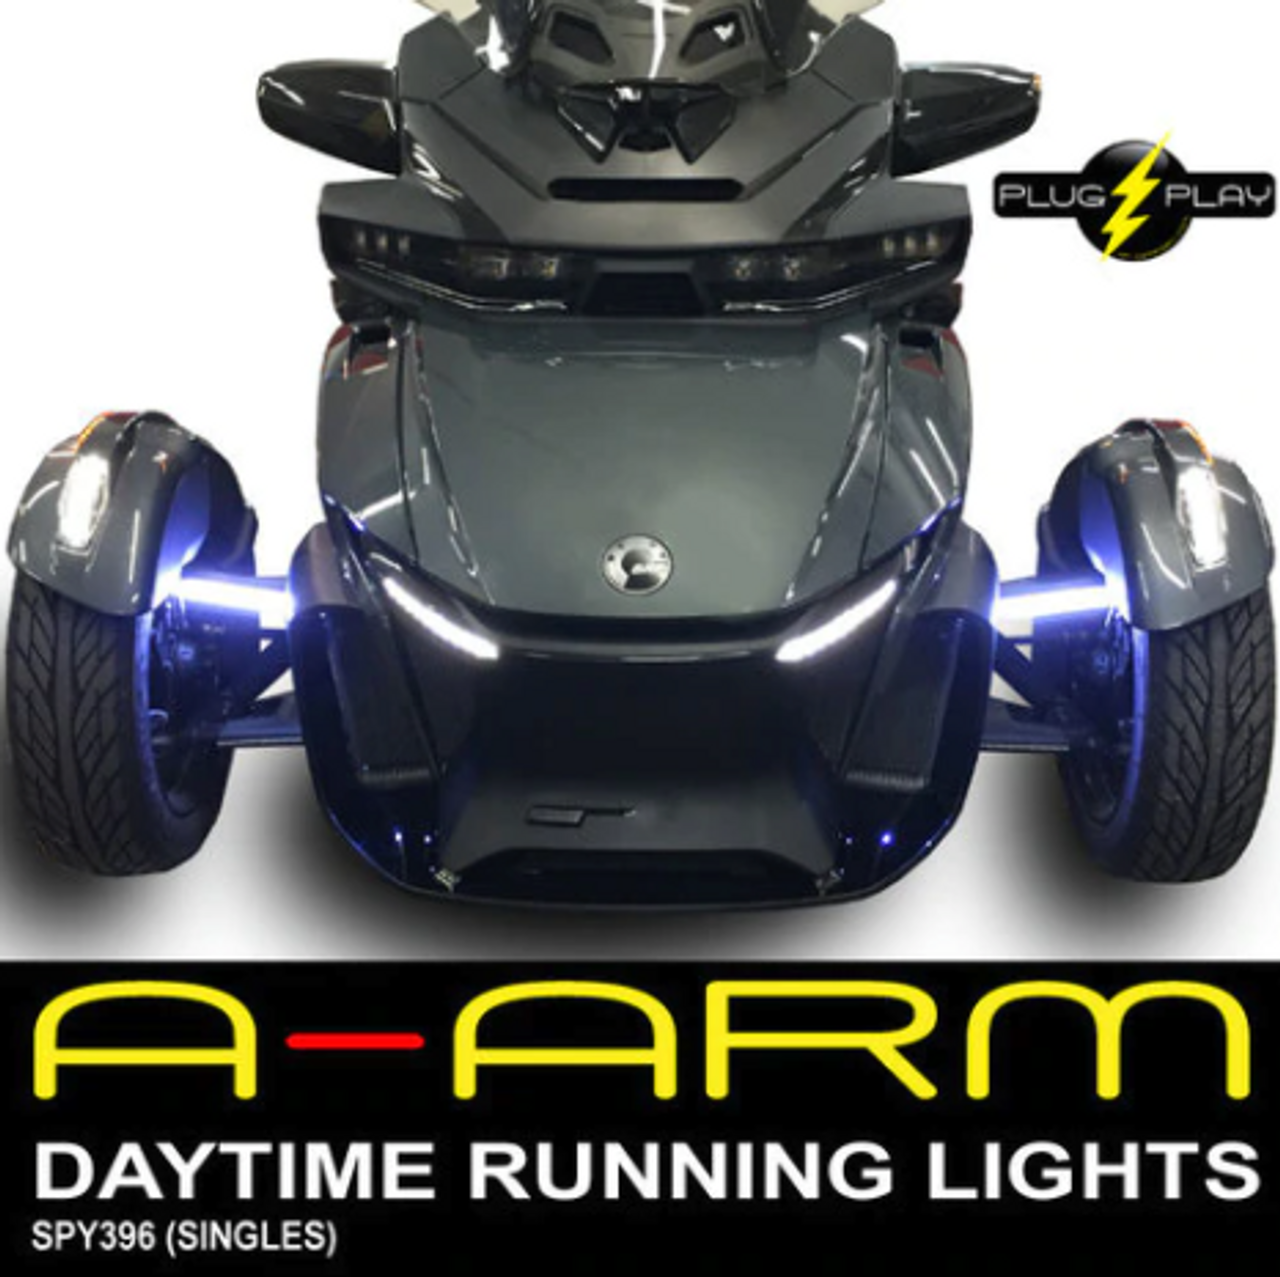 2020 - UP CAN AM SPYDER RT DAYTIME RUNNING LED LIGHTS (1-PAIR) FOR THE FRONT A-ARMS (SPY-396)